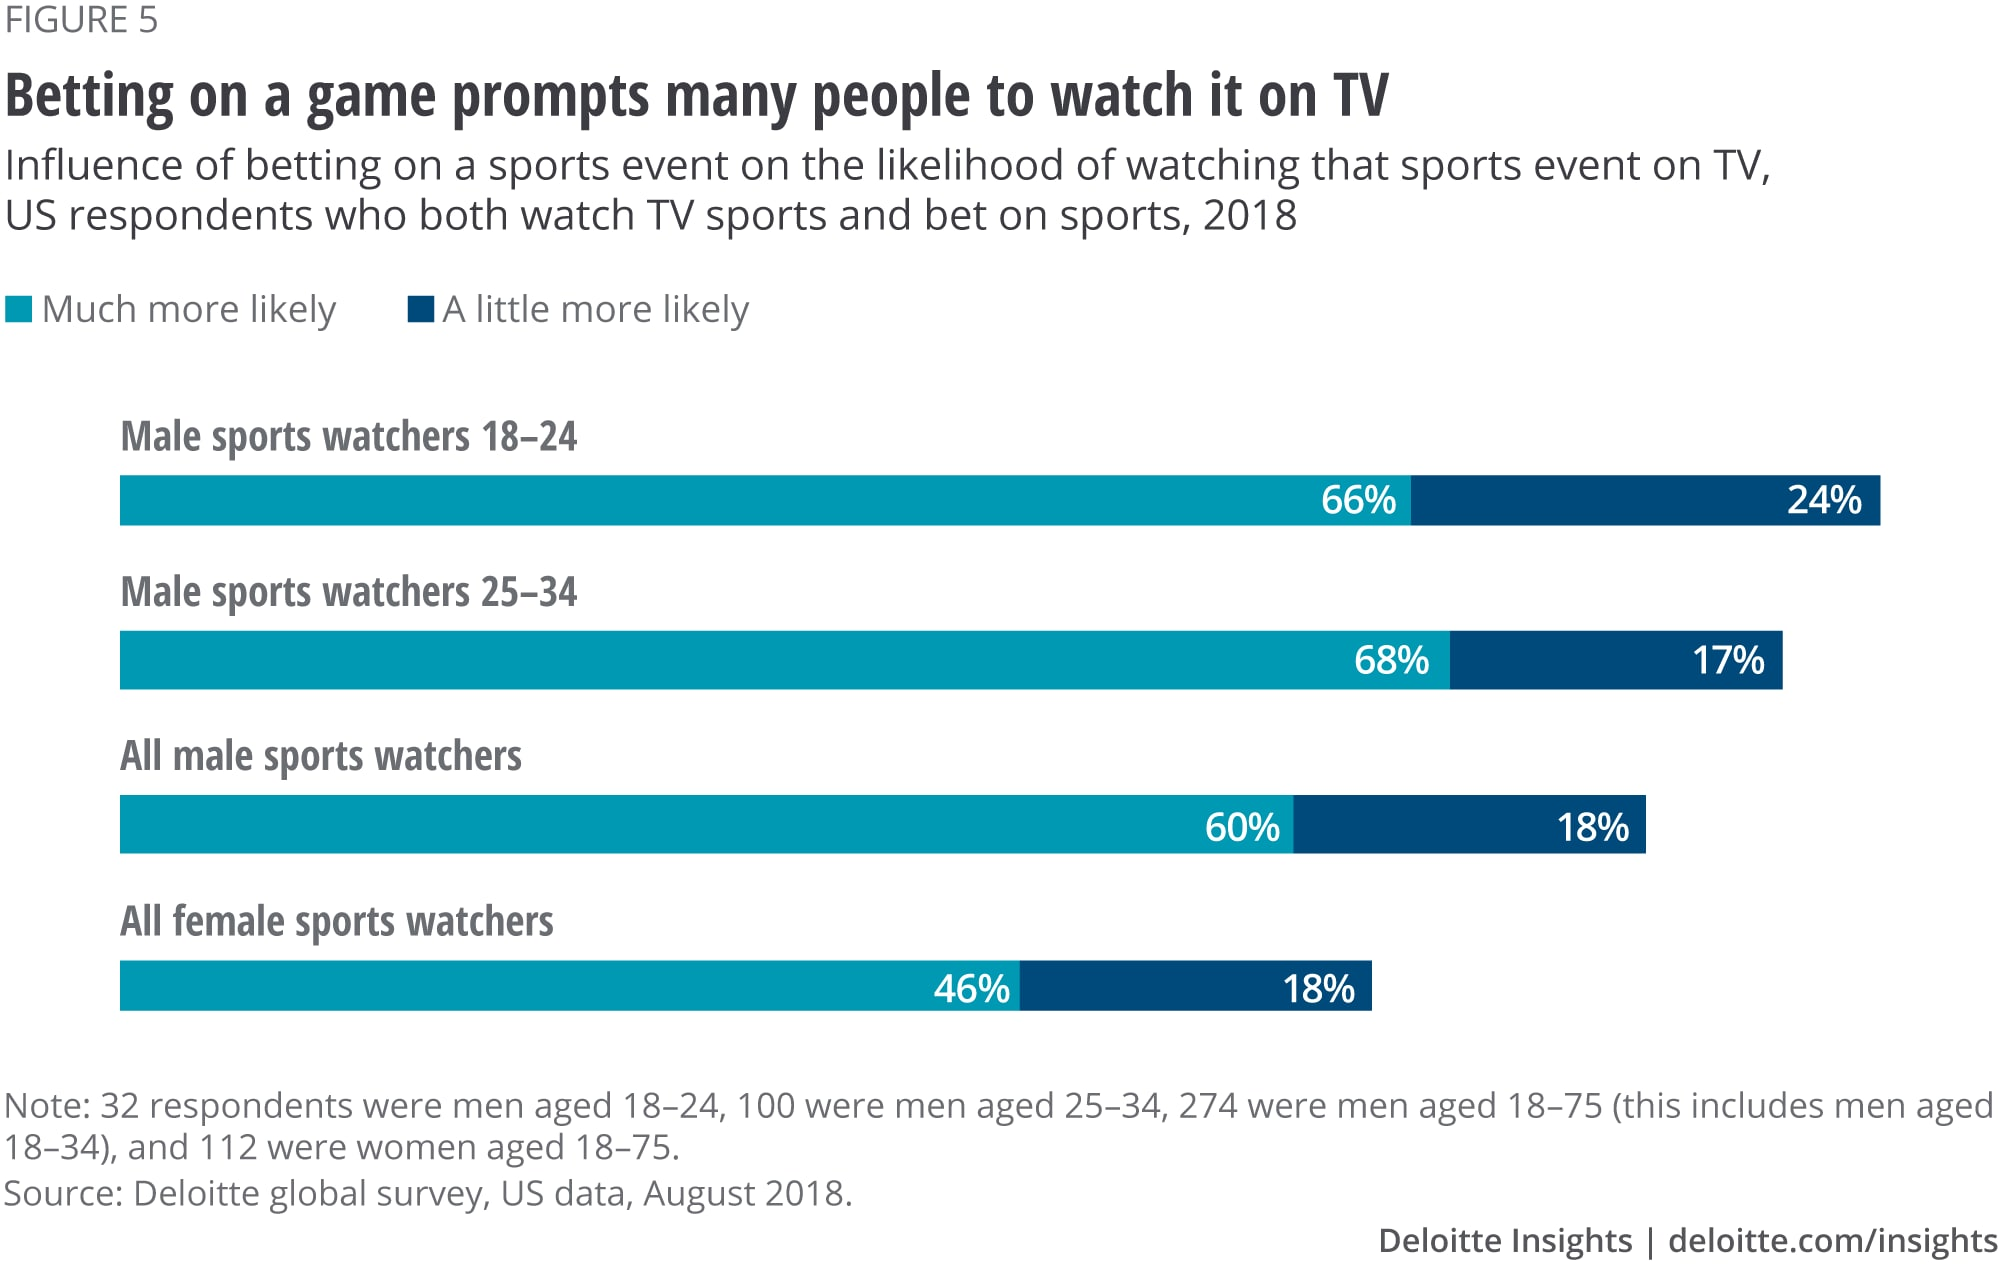 Betting on a game prompts many people to watch it on TV